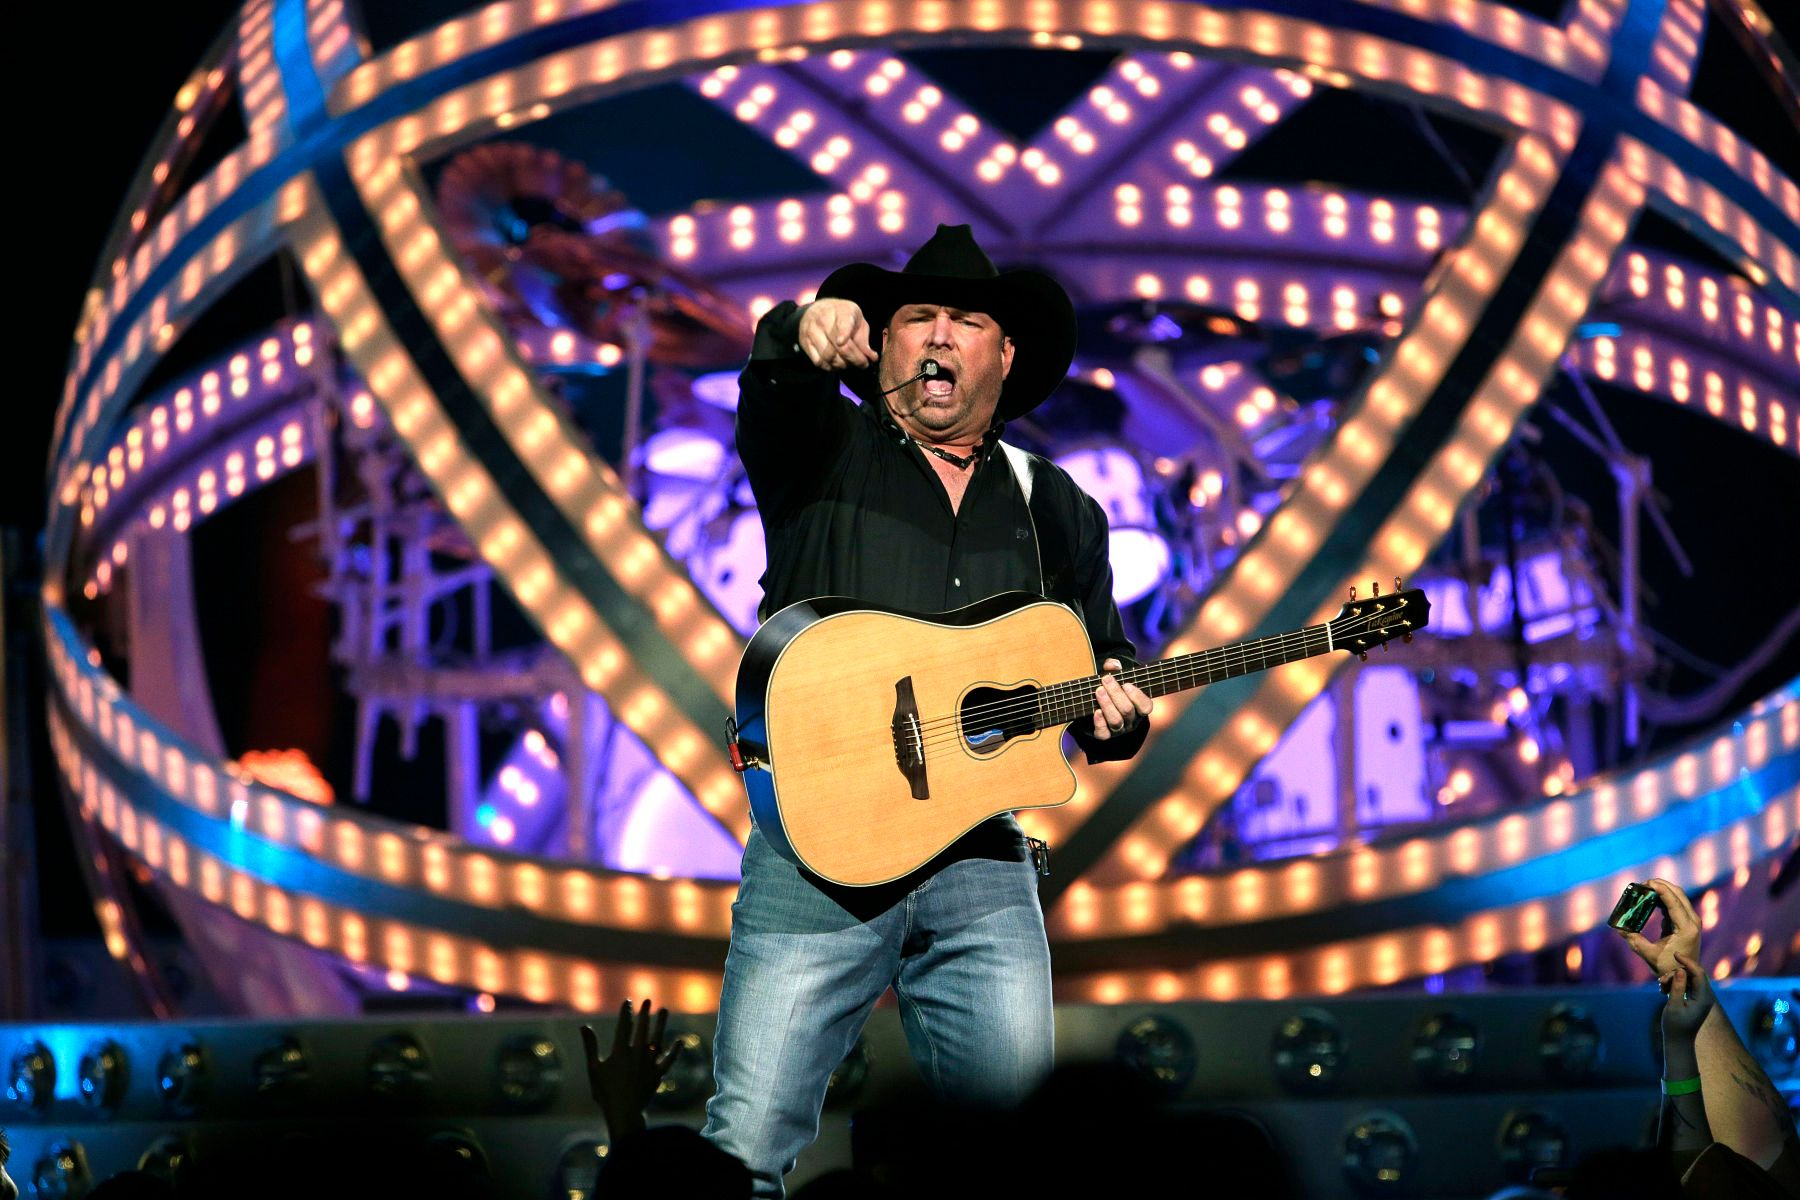 1garth_brooks_1.jpg